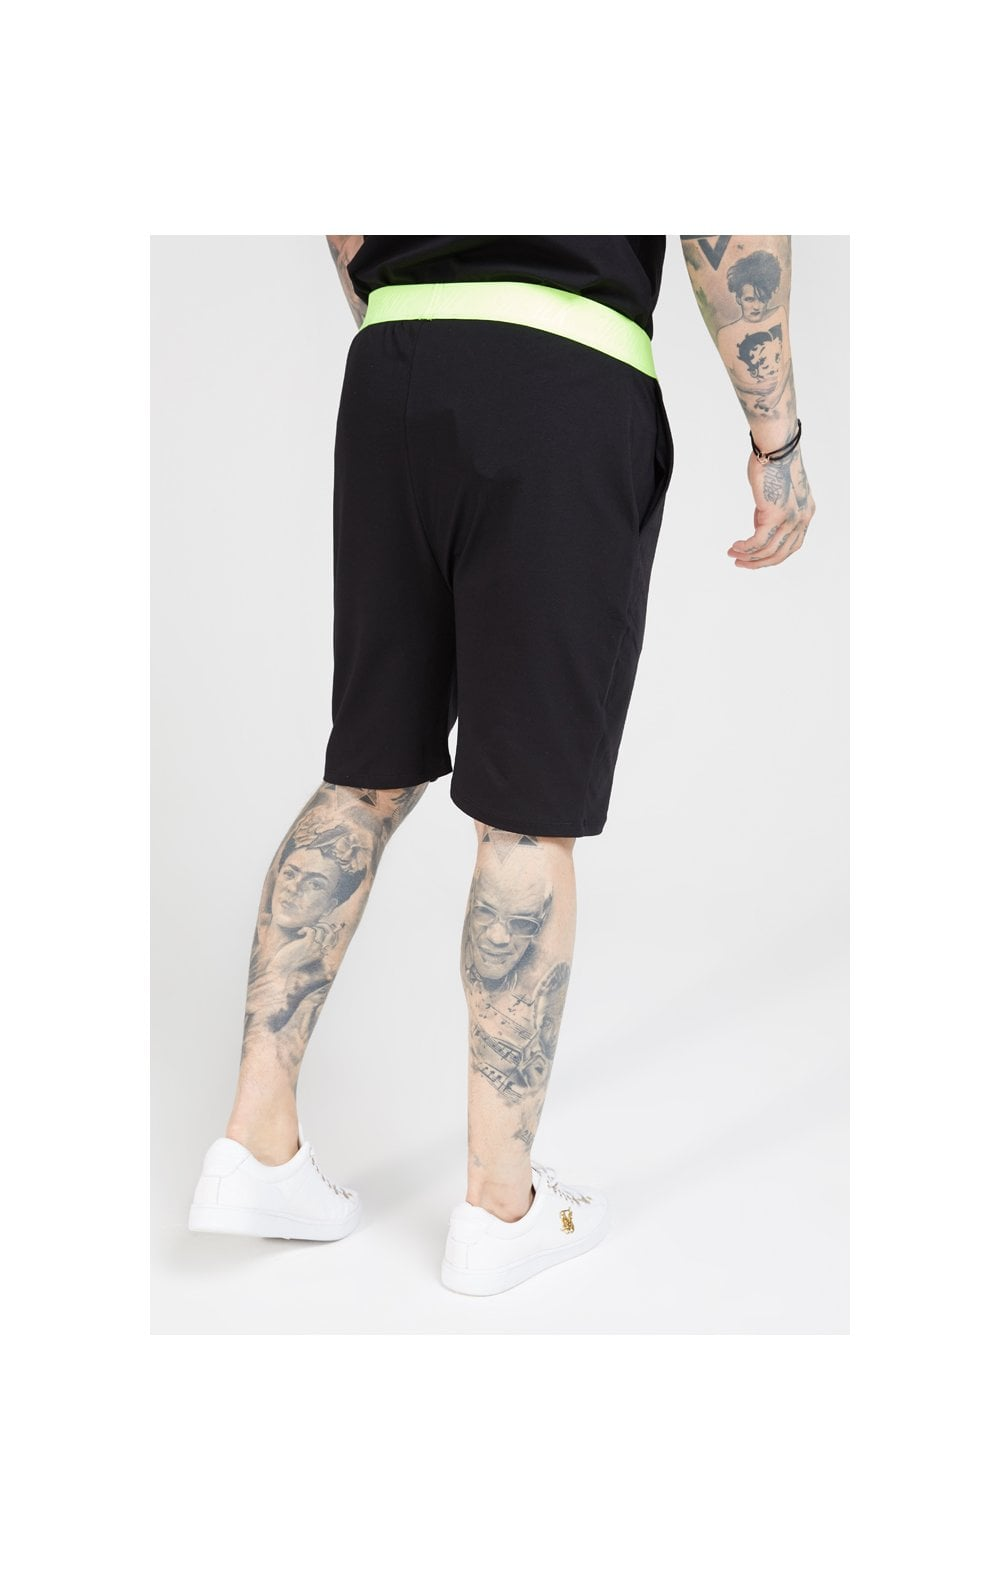 SikSilk Relaxed Fit Shorts – Black & Neon Yellow (1)